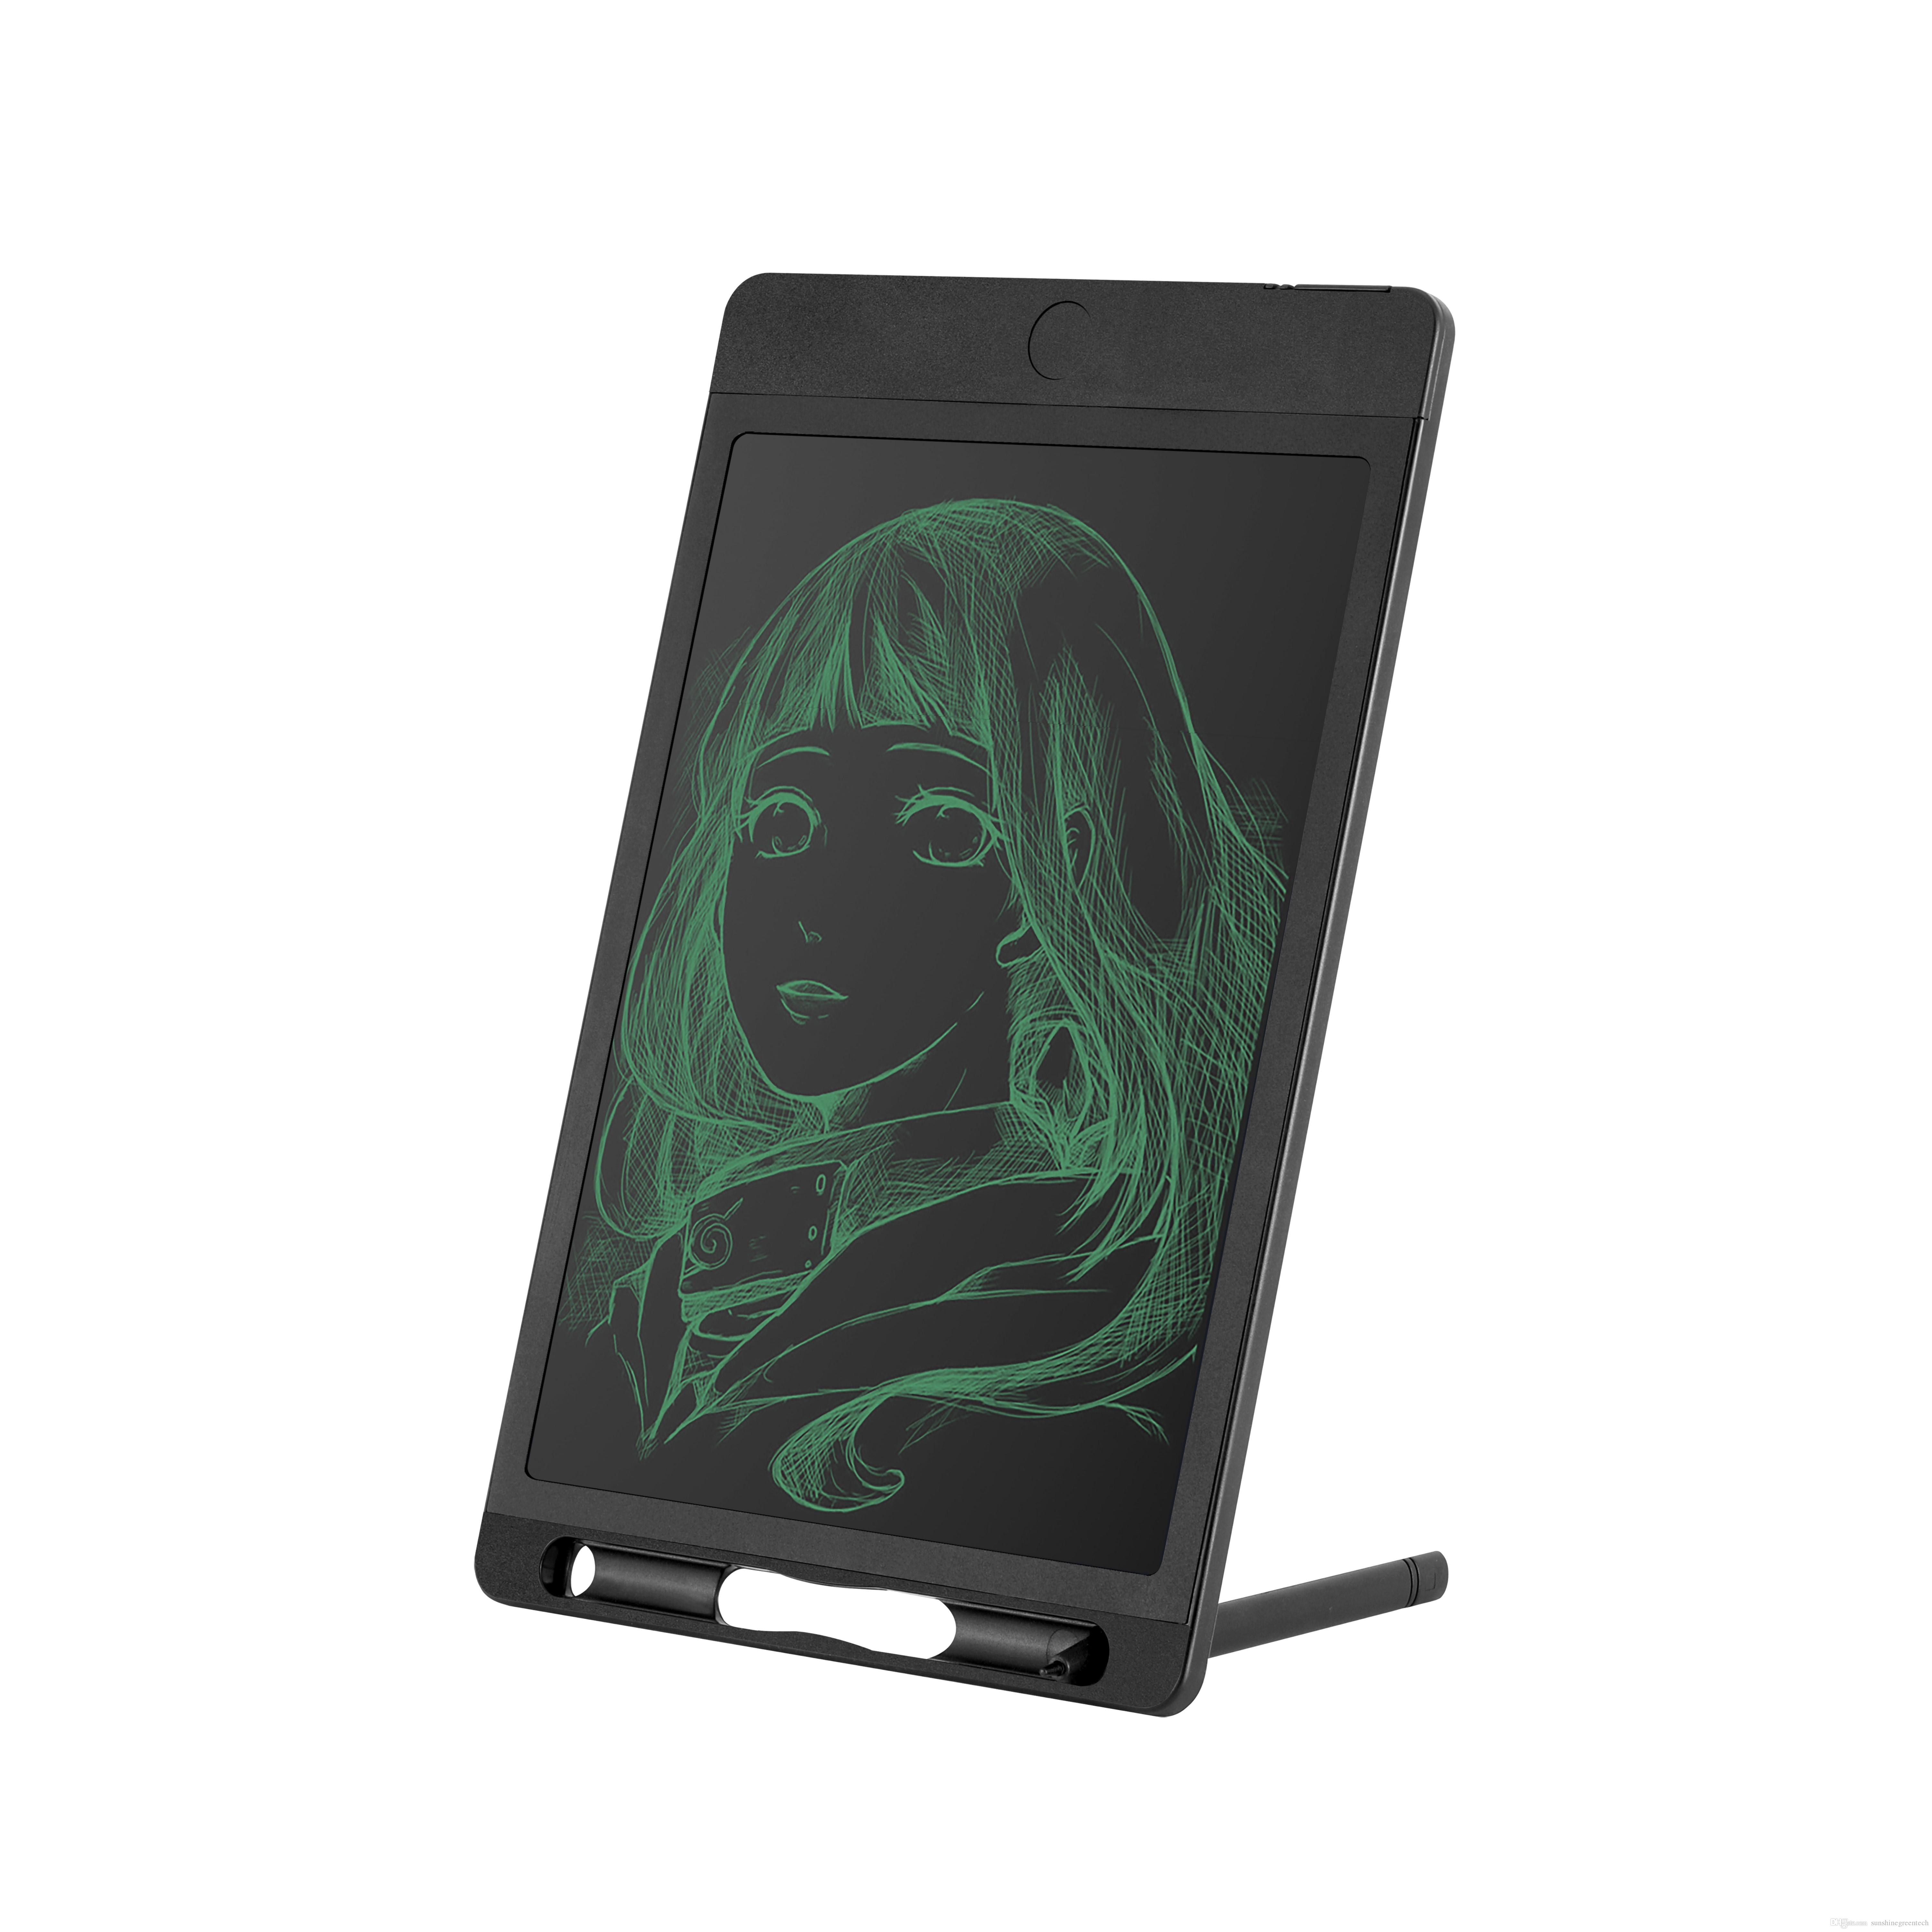 LCD Writing Pad Portable Kids Digital Drawing Tablet Suitable for Children 9 Inch Electronic Graffiti Drawing Tablet Portable Drawing Tablet with Pen